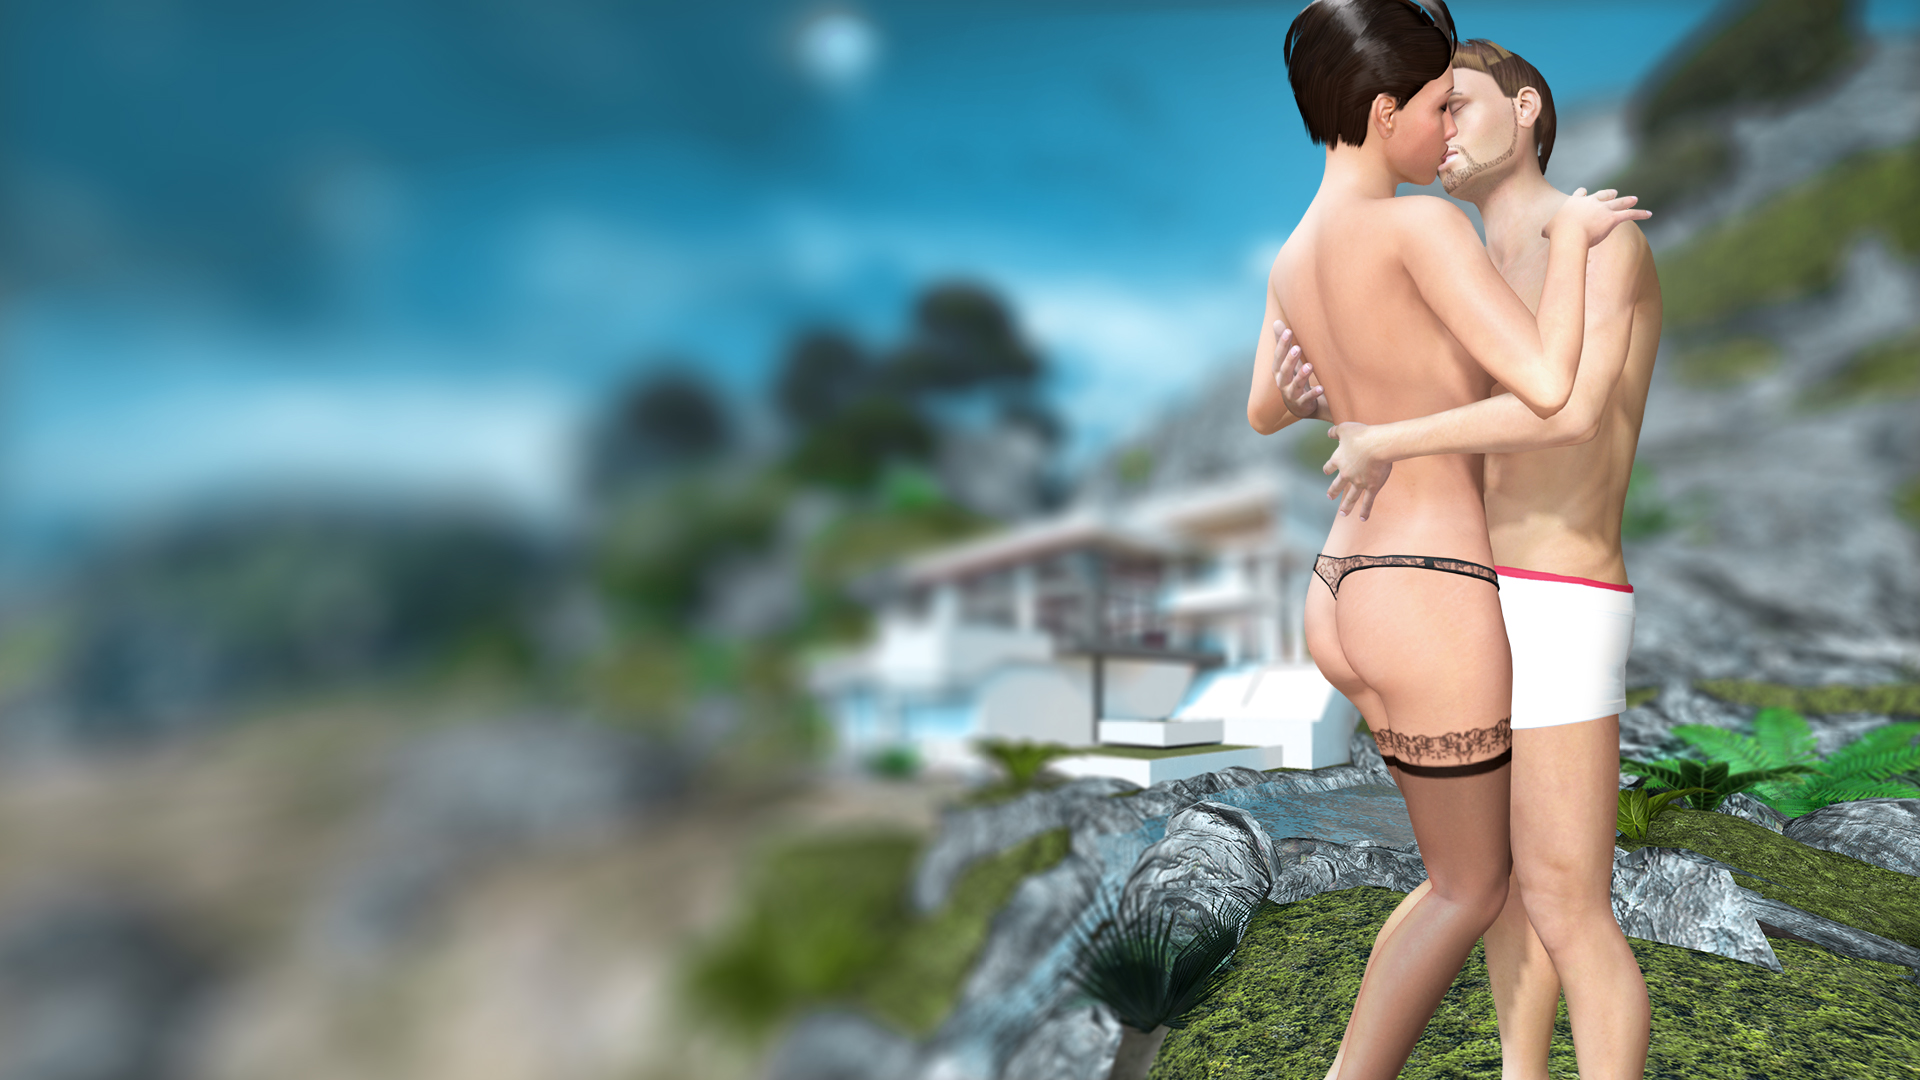 Interactive mmo sex games online porno picture